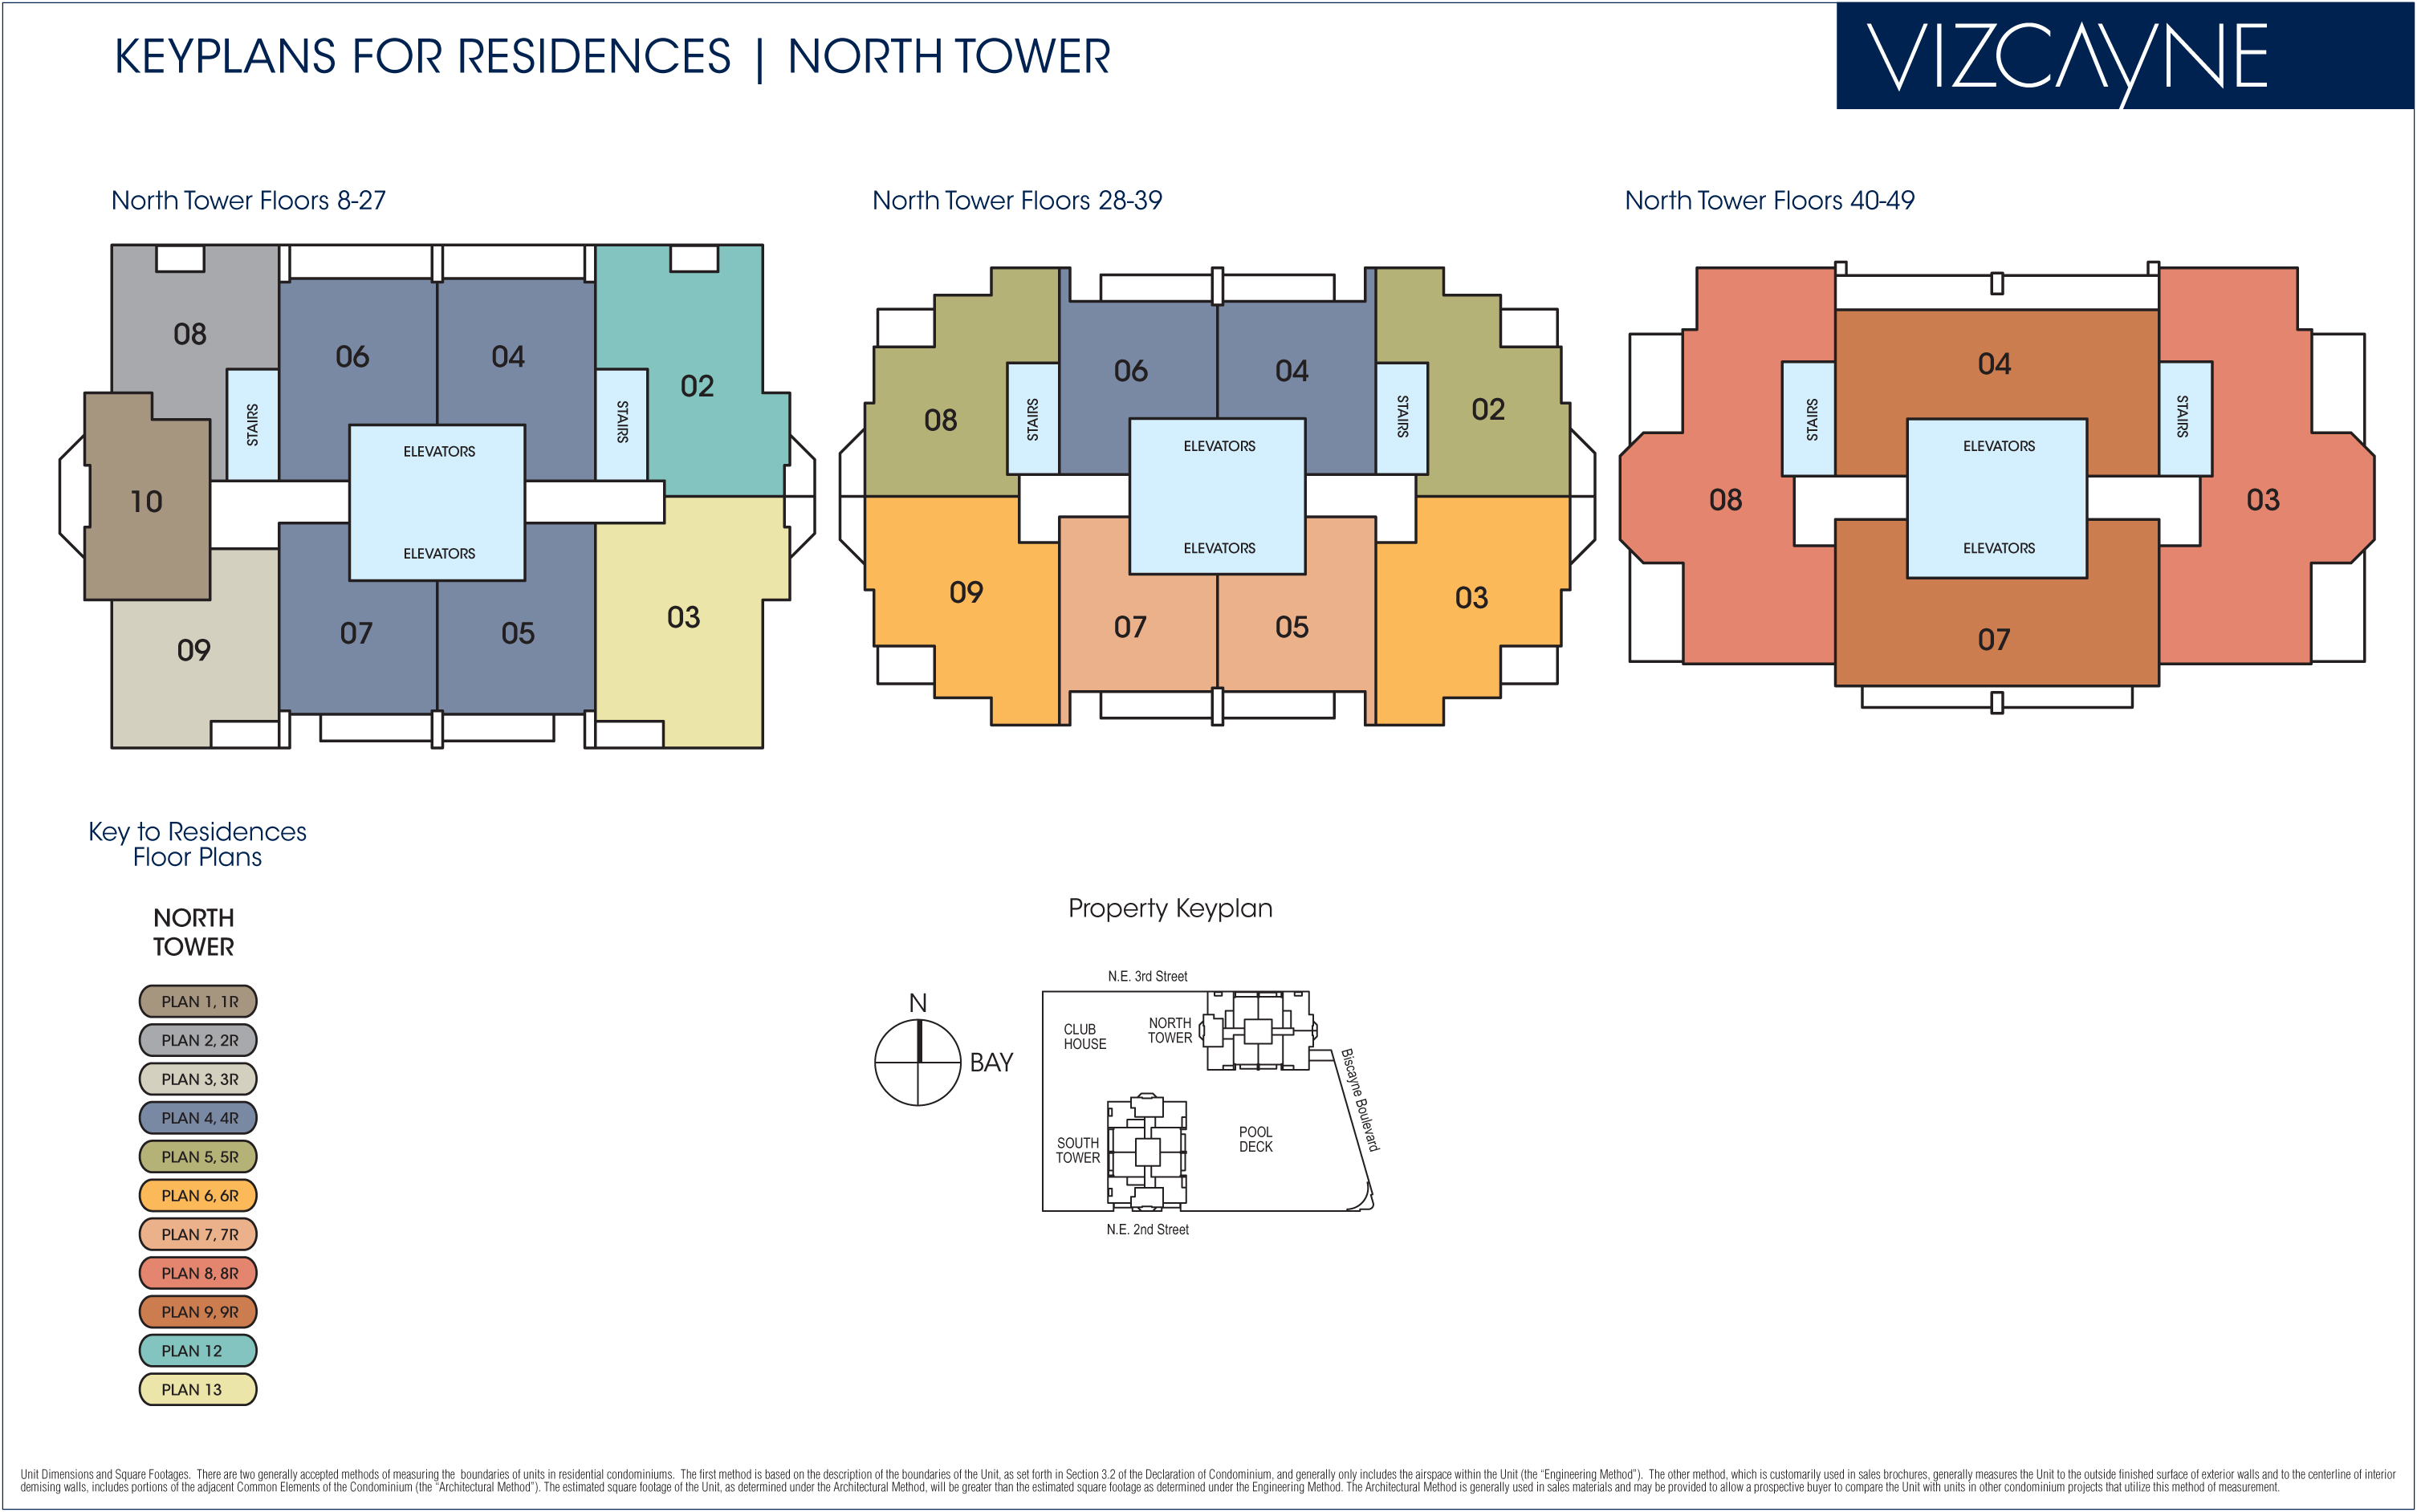 vizcayne tower floorplans miami one world trade center freedom tower floor plans new